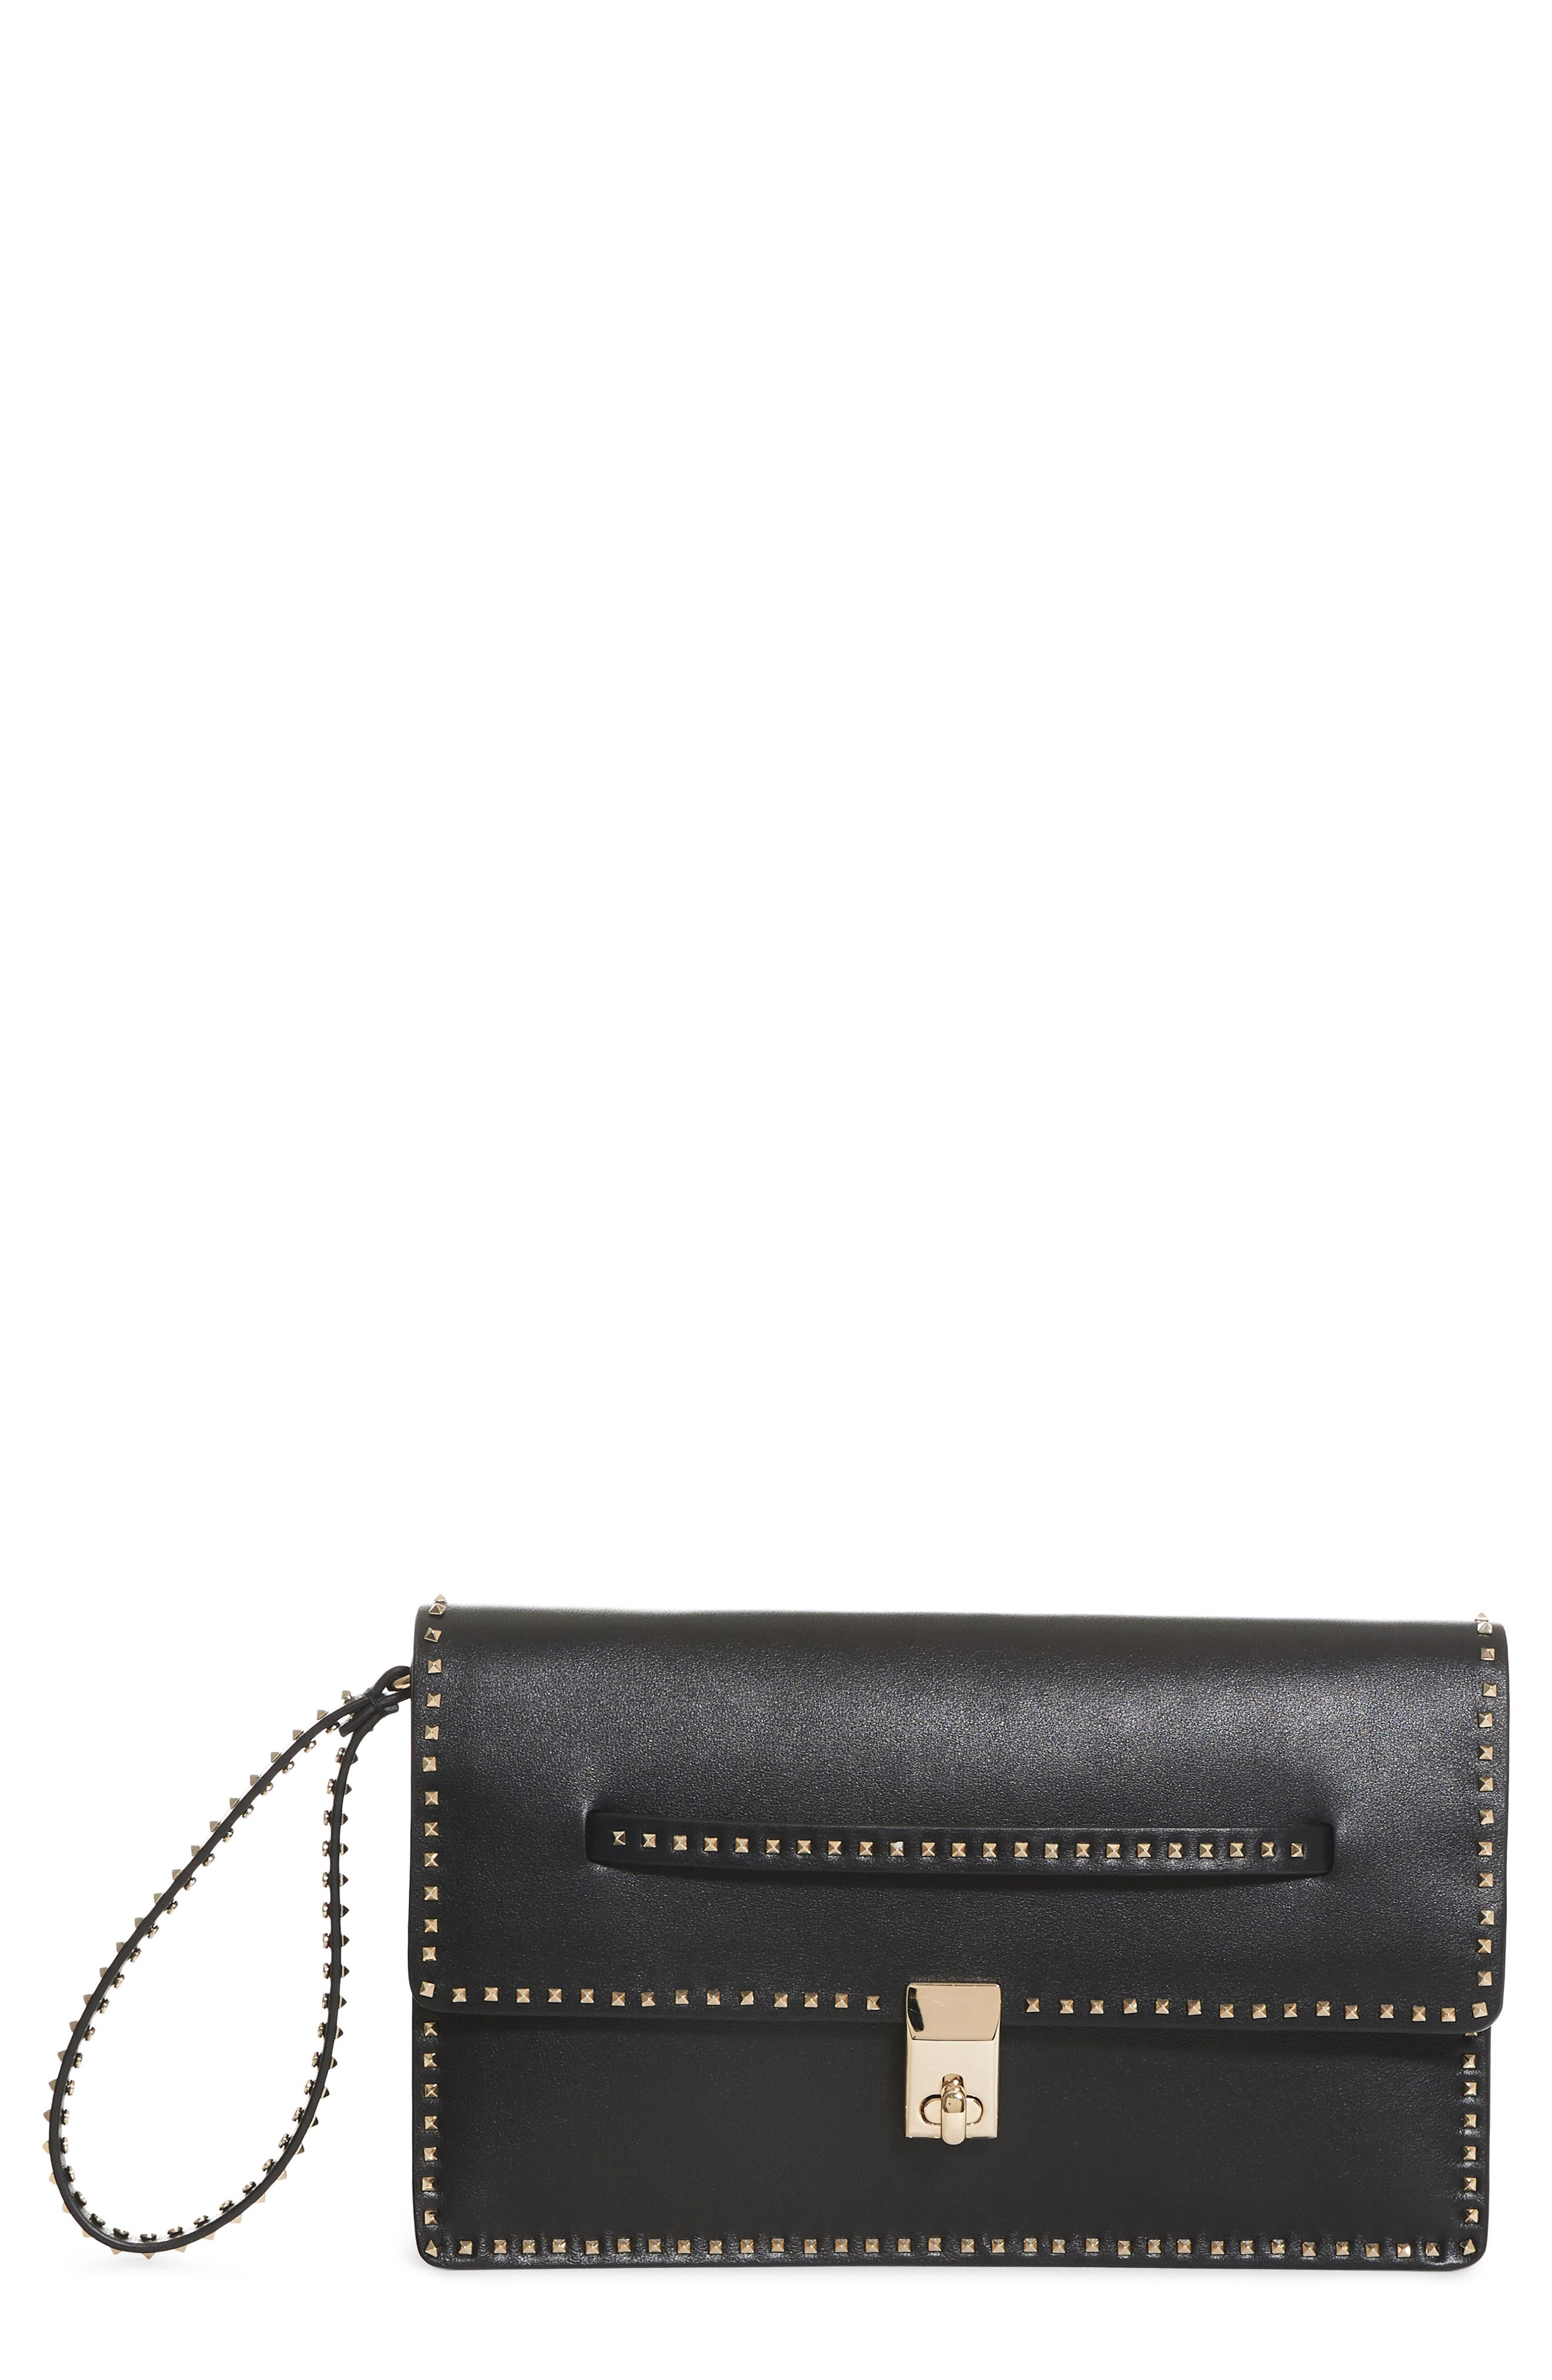 Alternate Image 1 Selected - VALENTINO GARAVANI Rockstud Calfskin Leather Clutch